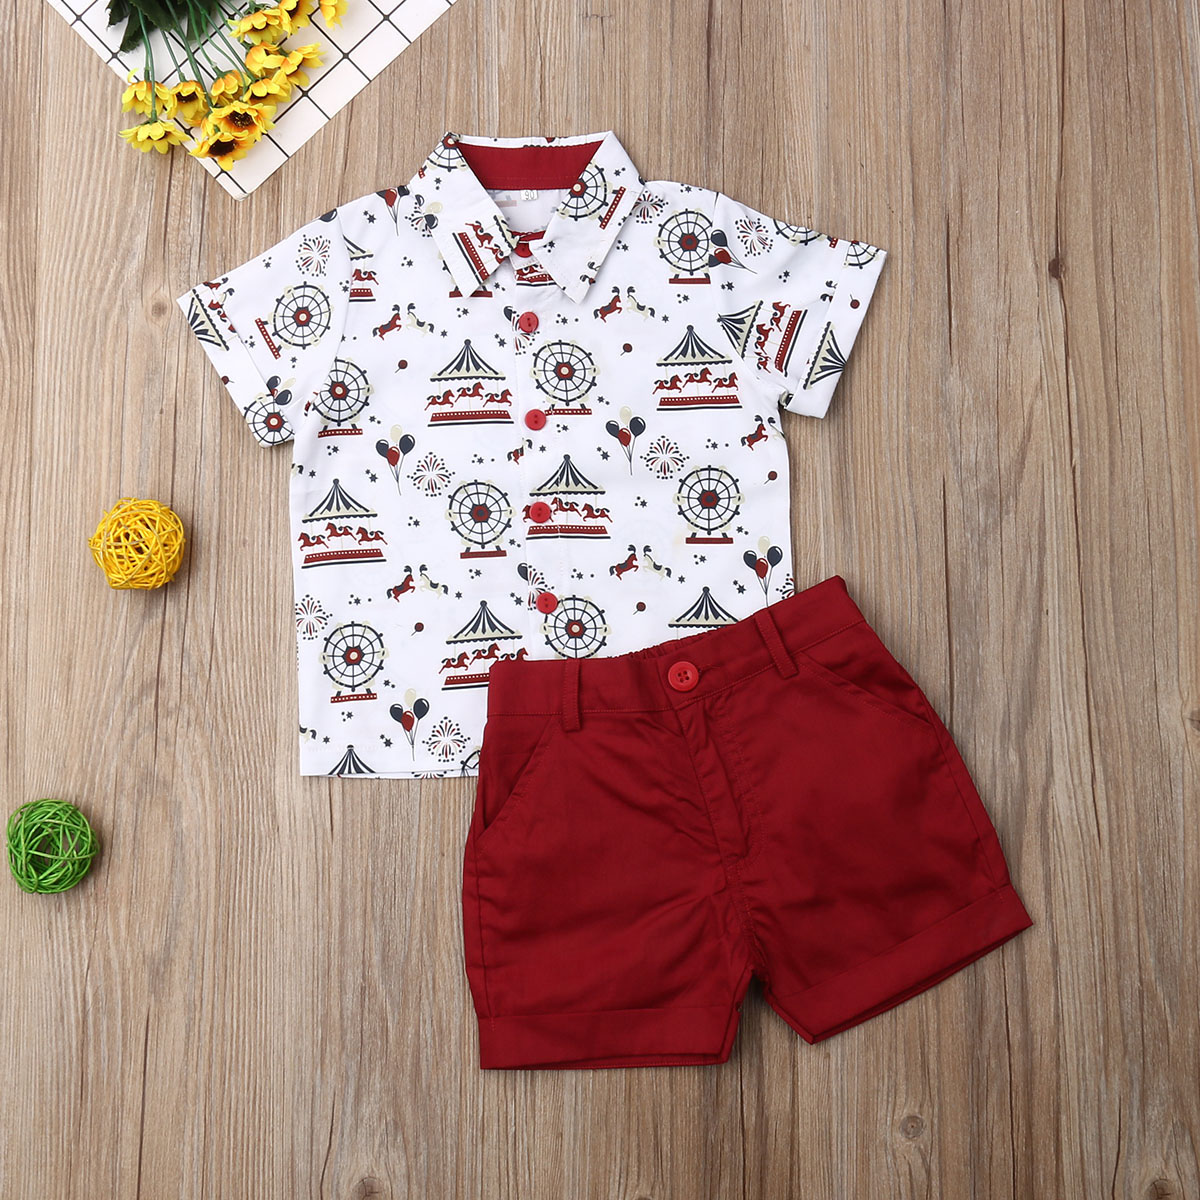 Pudcoco Toddler Baby Boy Clothes Merry-go-round Print Shirt Tops Short Pants 2Pcs Outfits Formal Gentleman Suit Clothes